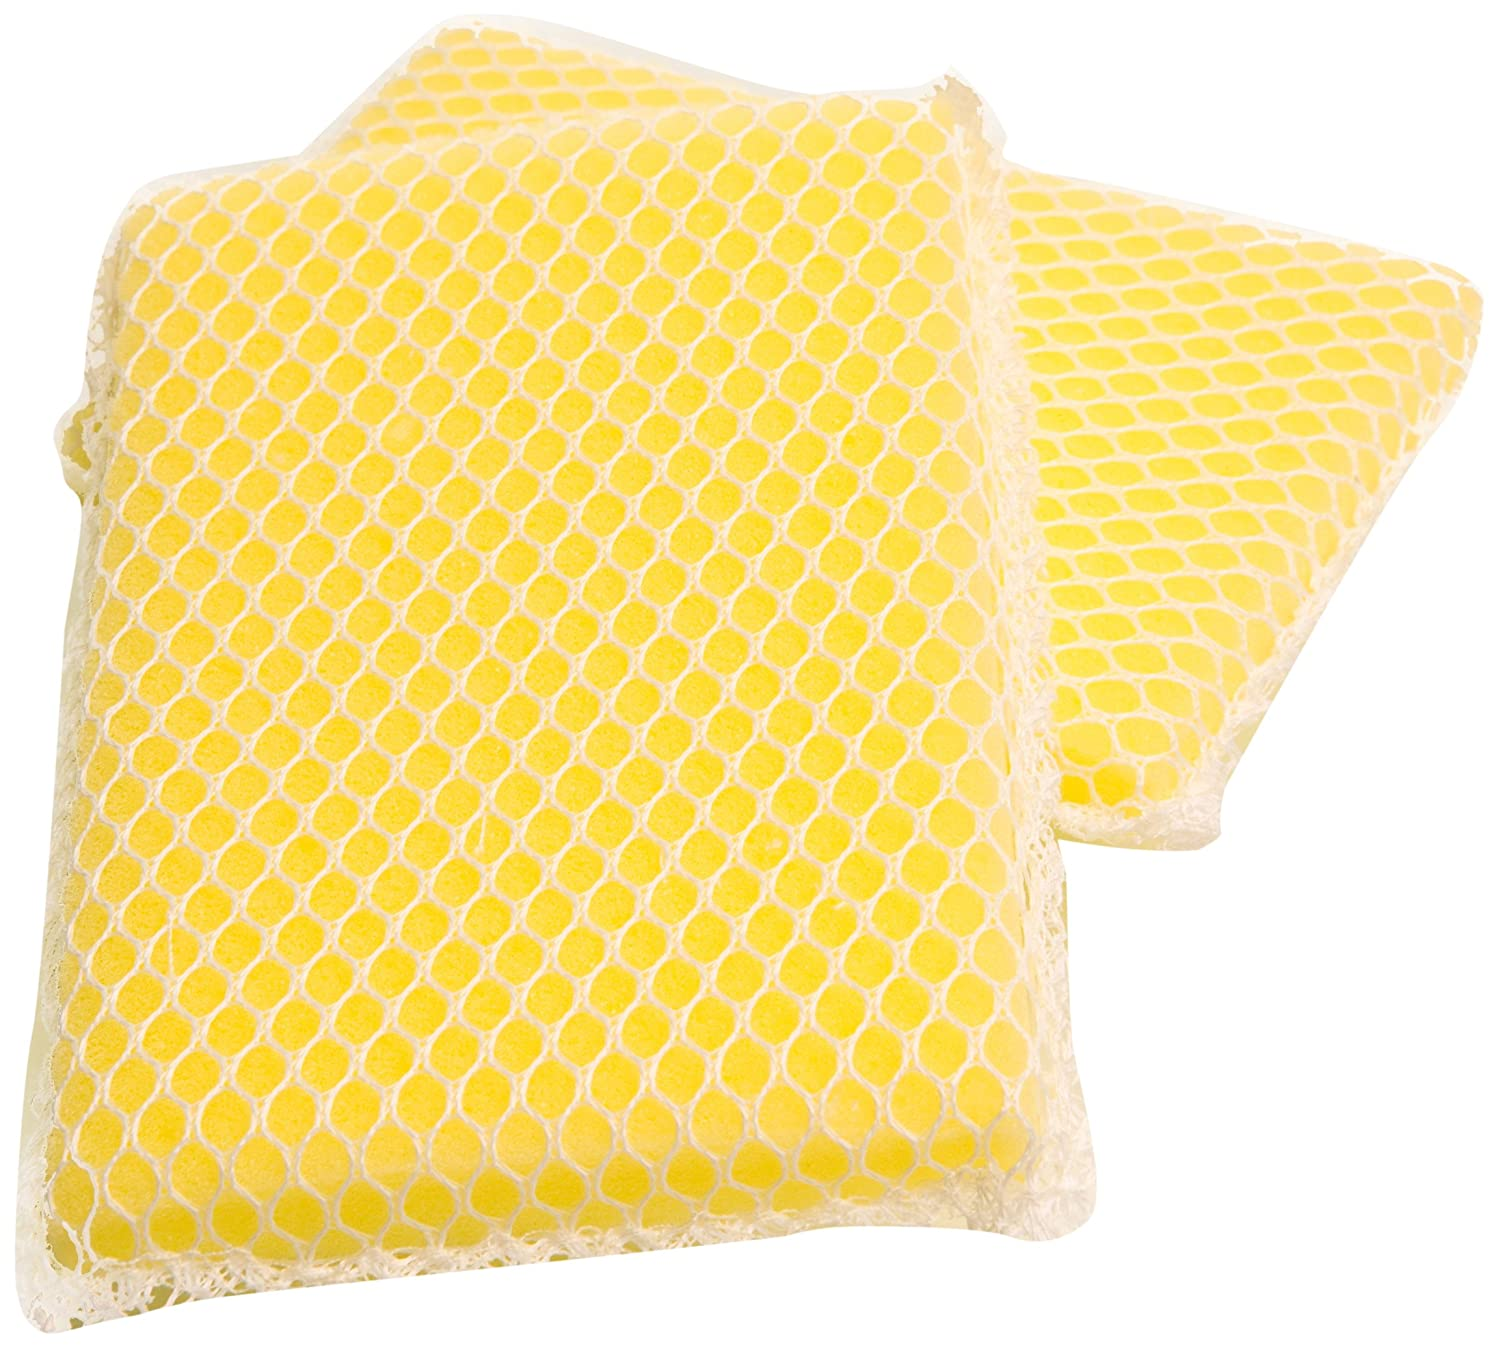 Lola 461 Nylon Net And Sponge Cleaning Pad 12 Pack New